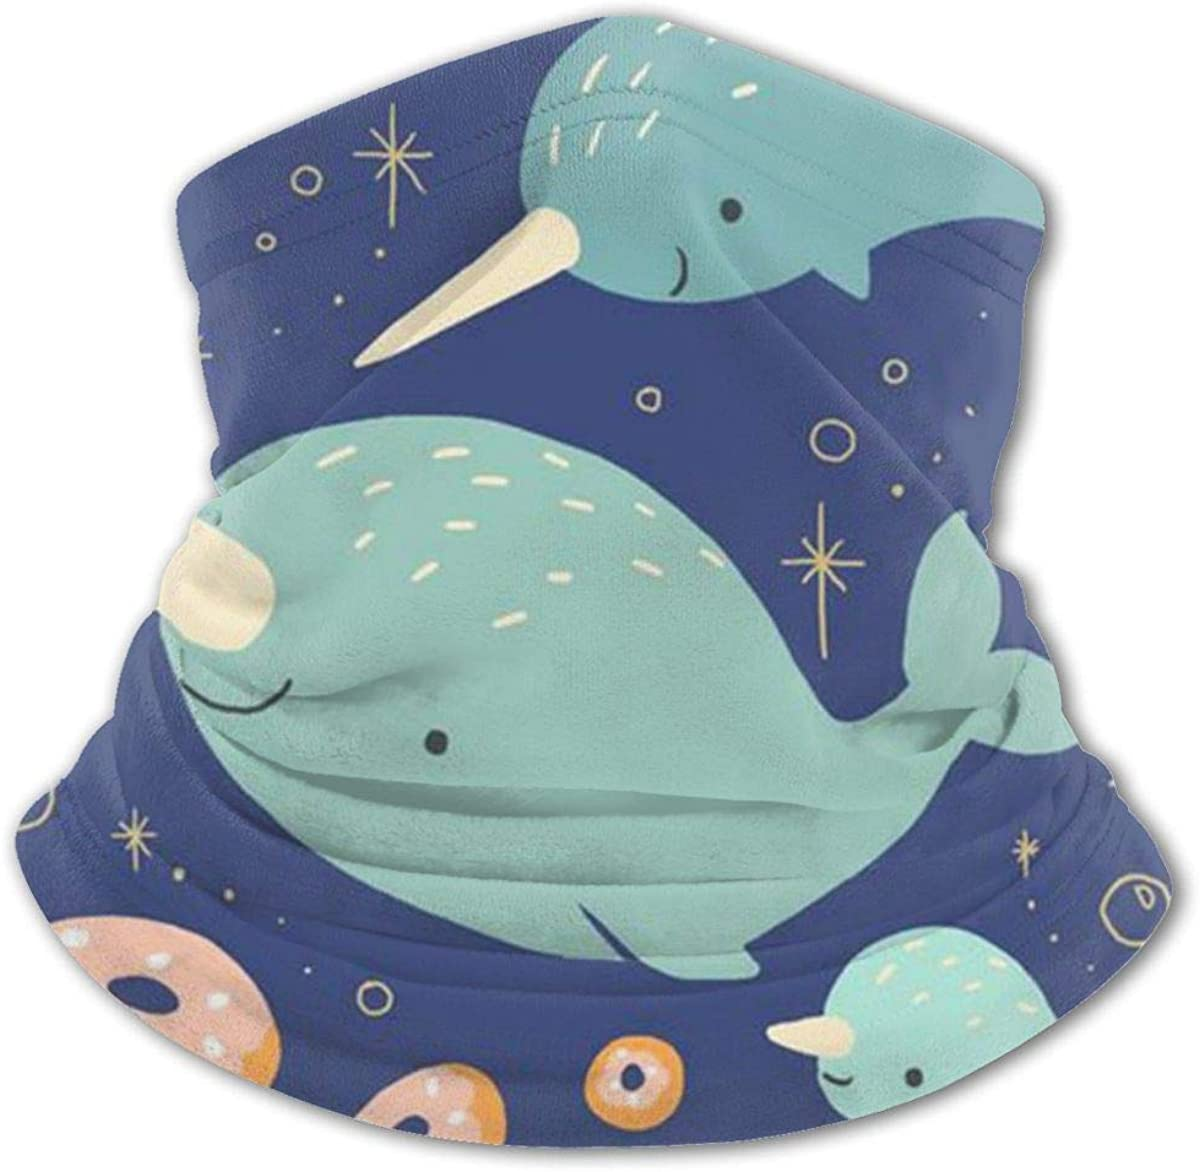 Cute Narwhal Headwear For Girls And Boys, Head Wrap, Neck Gaiter, Headband, Tenn Fishing Mask, Magic Scarf, Tube Mask, Face Bandana Mask For Camping Running Cycling